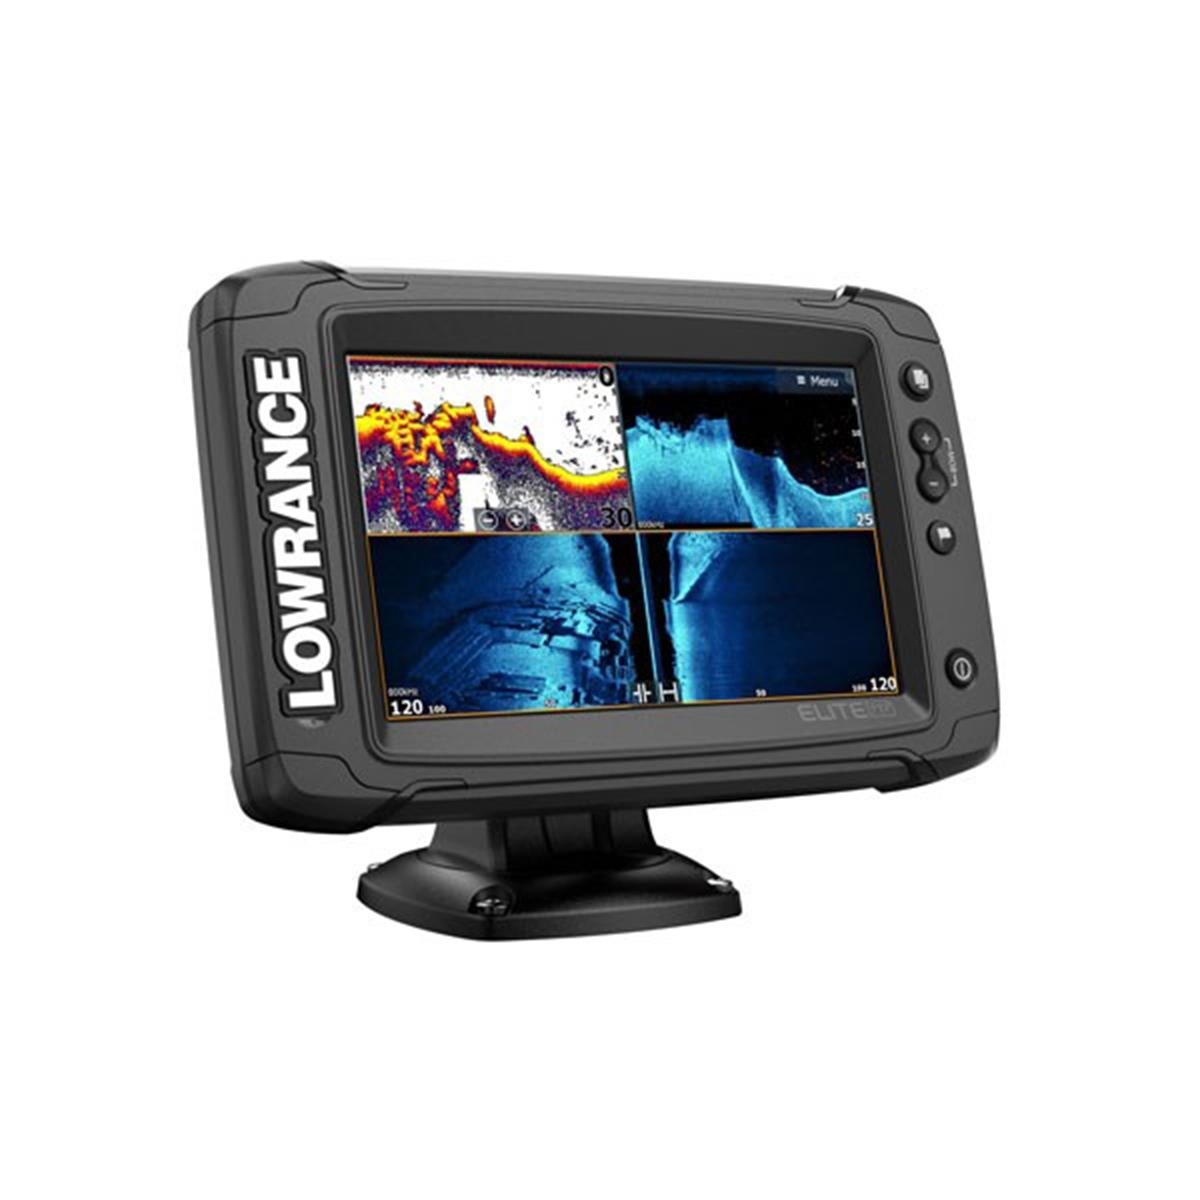 Sounder Lowrance Elite-7 Ti² With Active Imaging 3-in-1 (row) (000-14640-001)